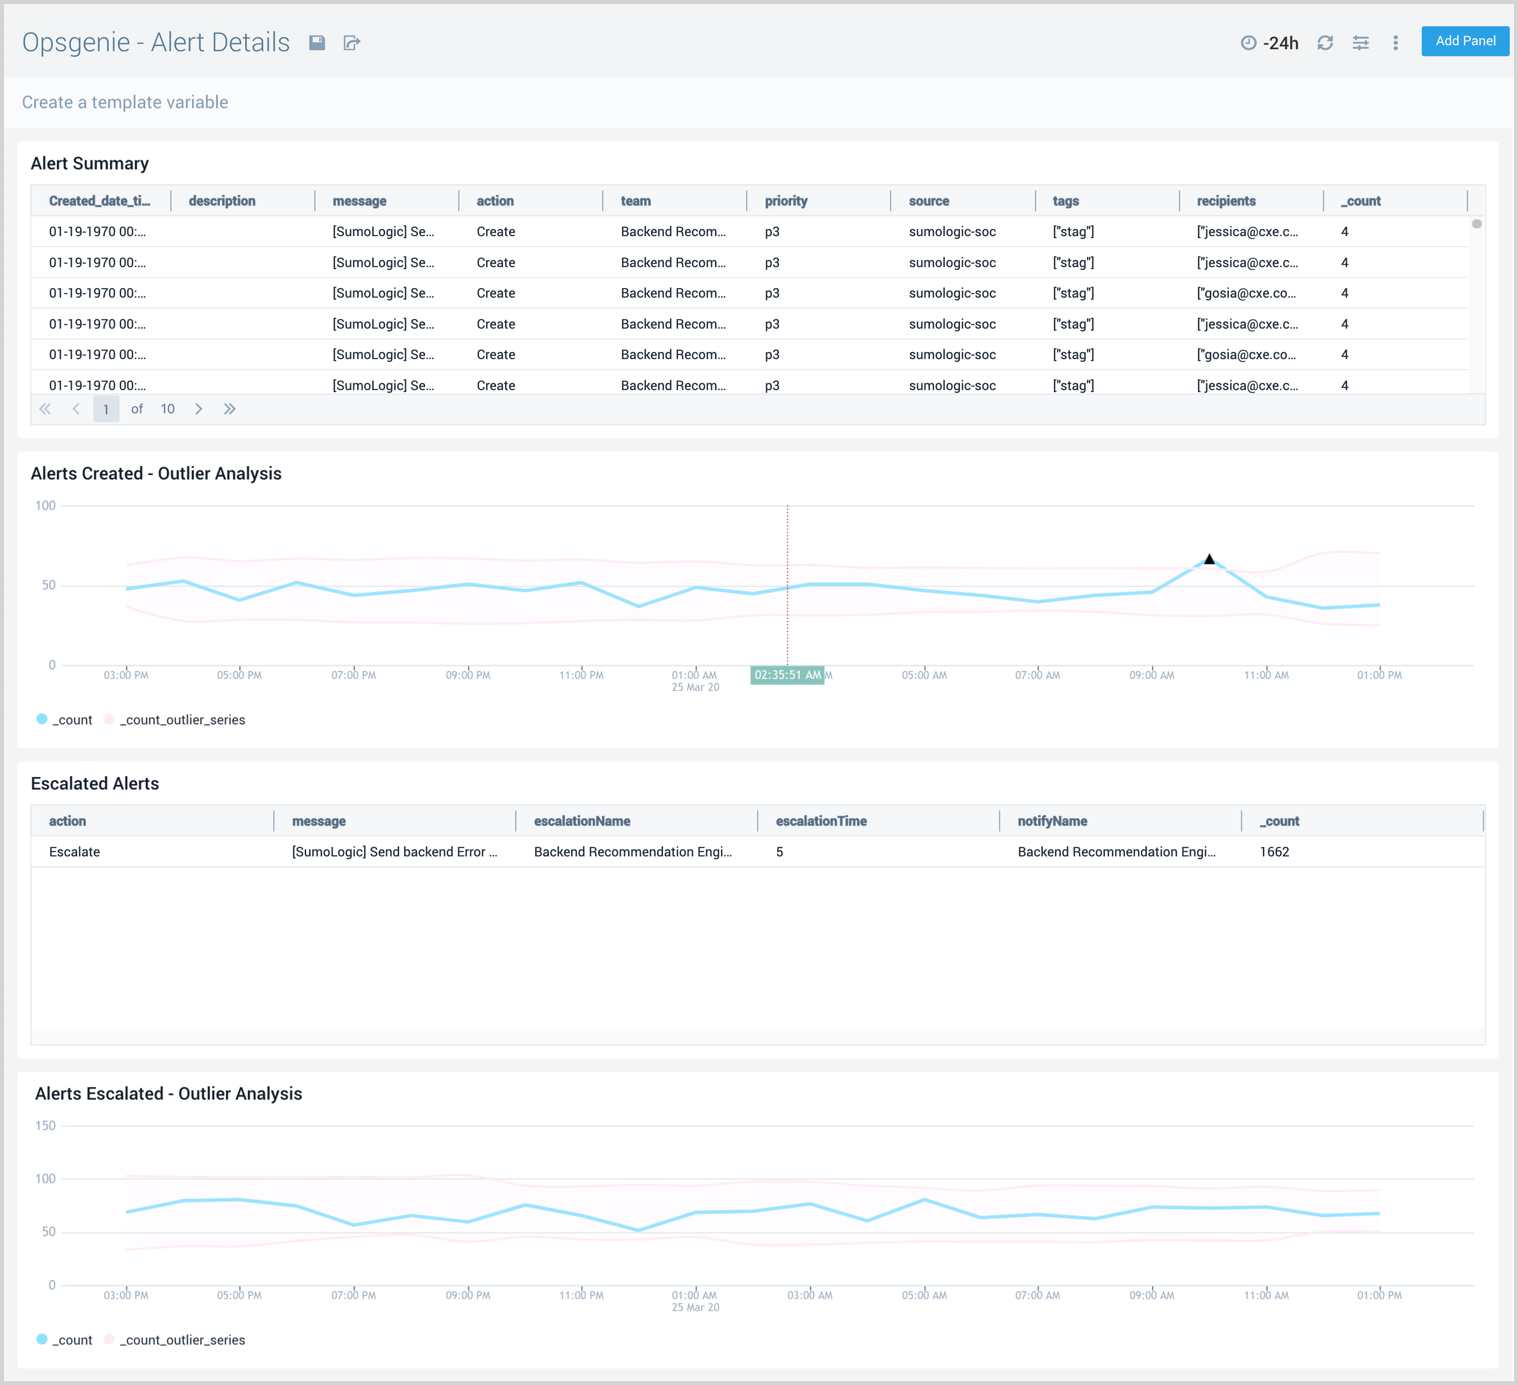 Visualize rich analytics for alert outliers, escalated alerts, and alert summaries.